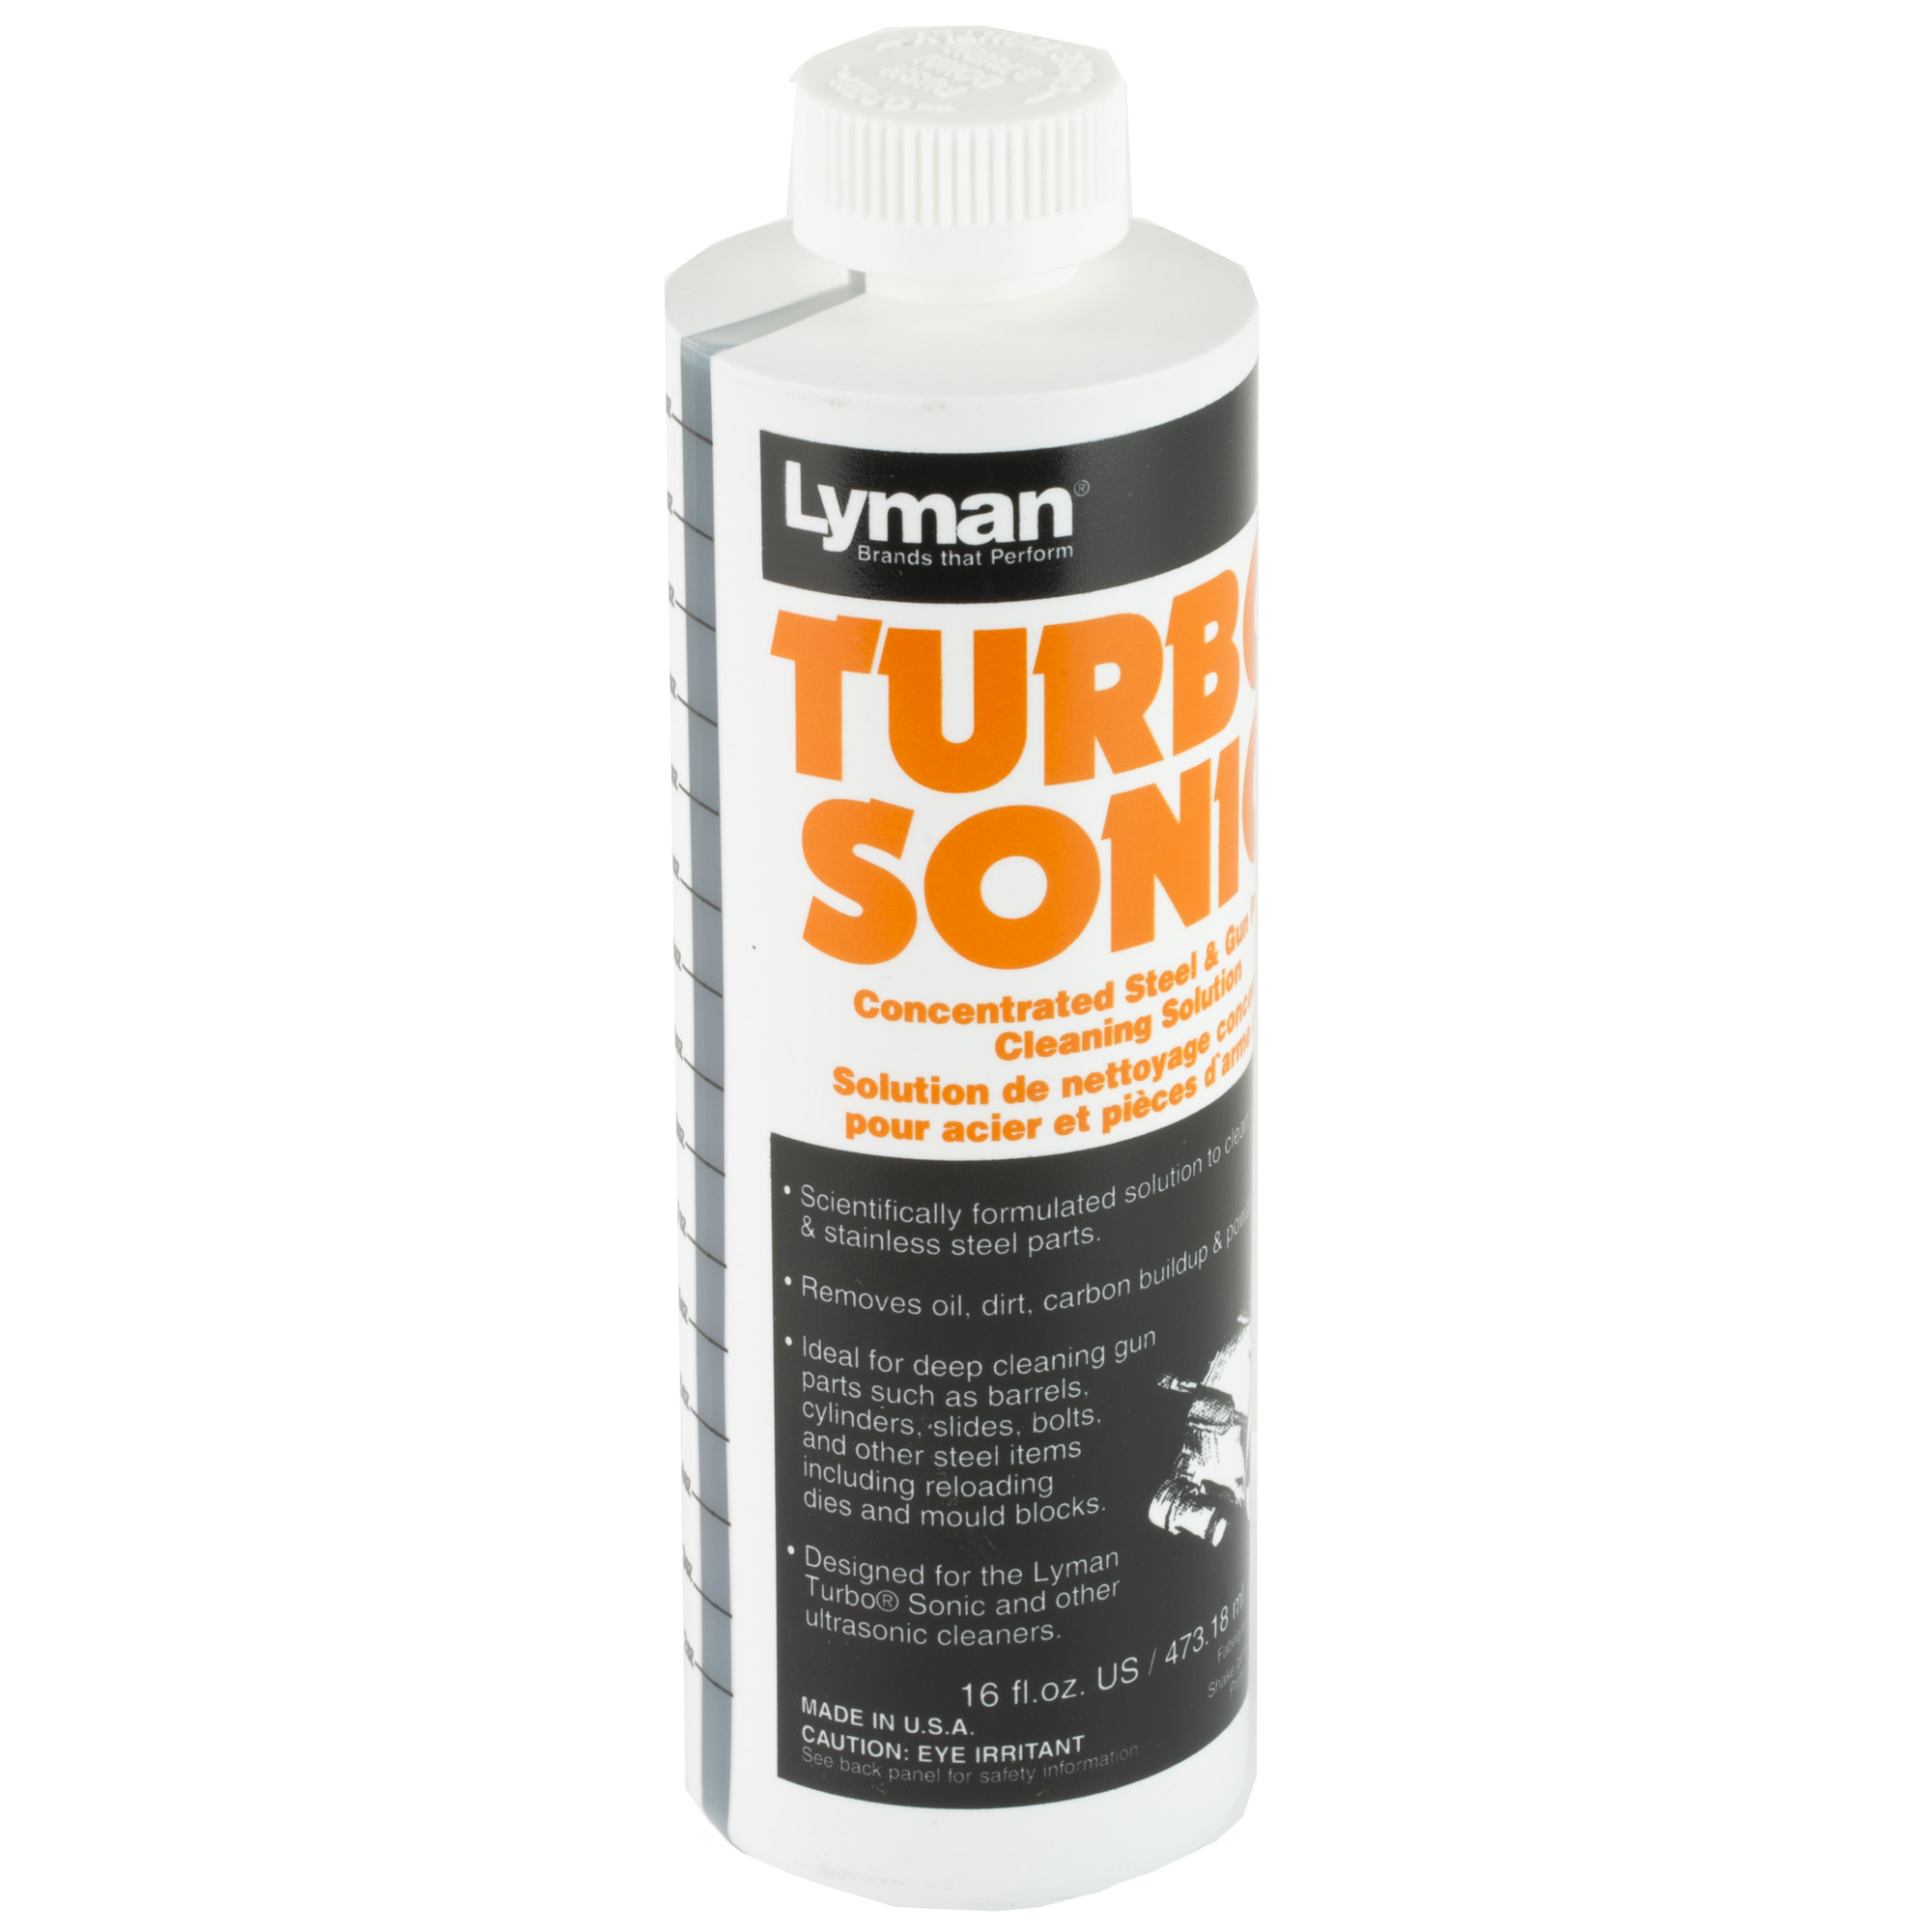 Cleaning with ultrasonics requires the correct solution for the correct cleaning application. Lyman has partnered with a renowned chemical research team to develop the right solutions for use with today's Ultrasonic Cleaners. Gun parts solution is the perfect choice for steel and stainless steel parts.